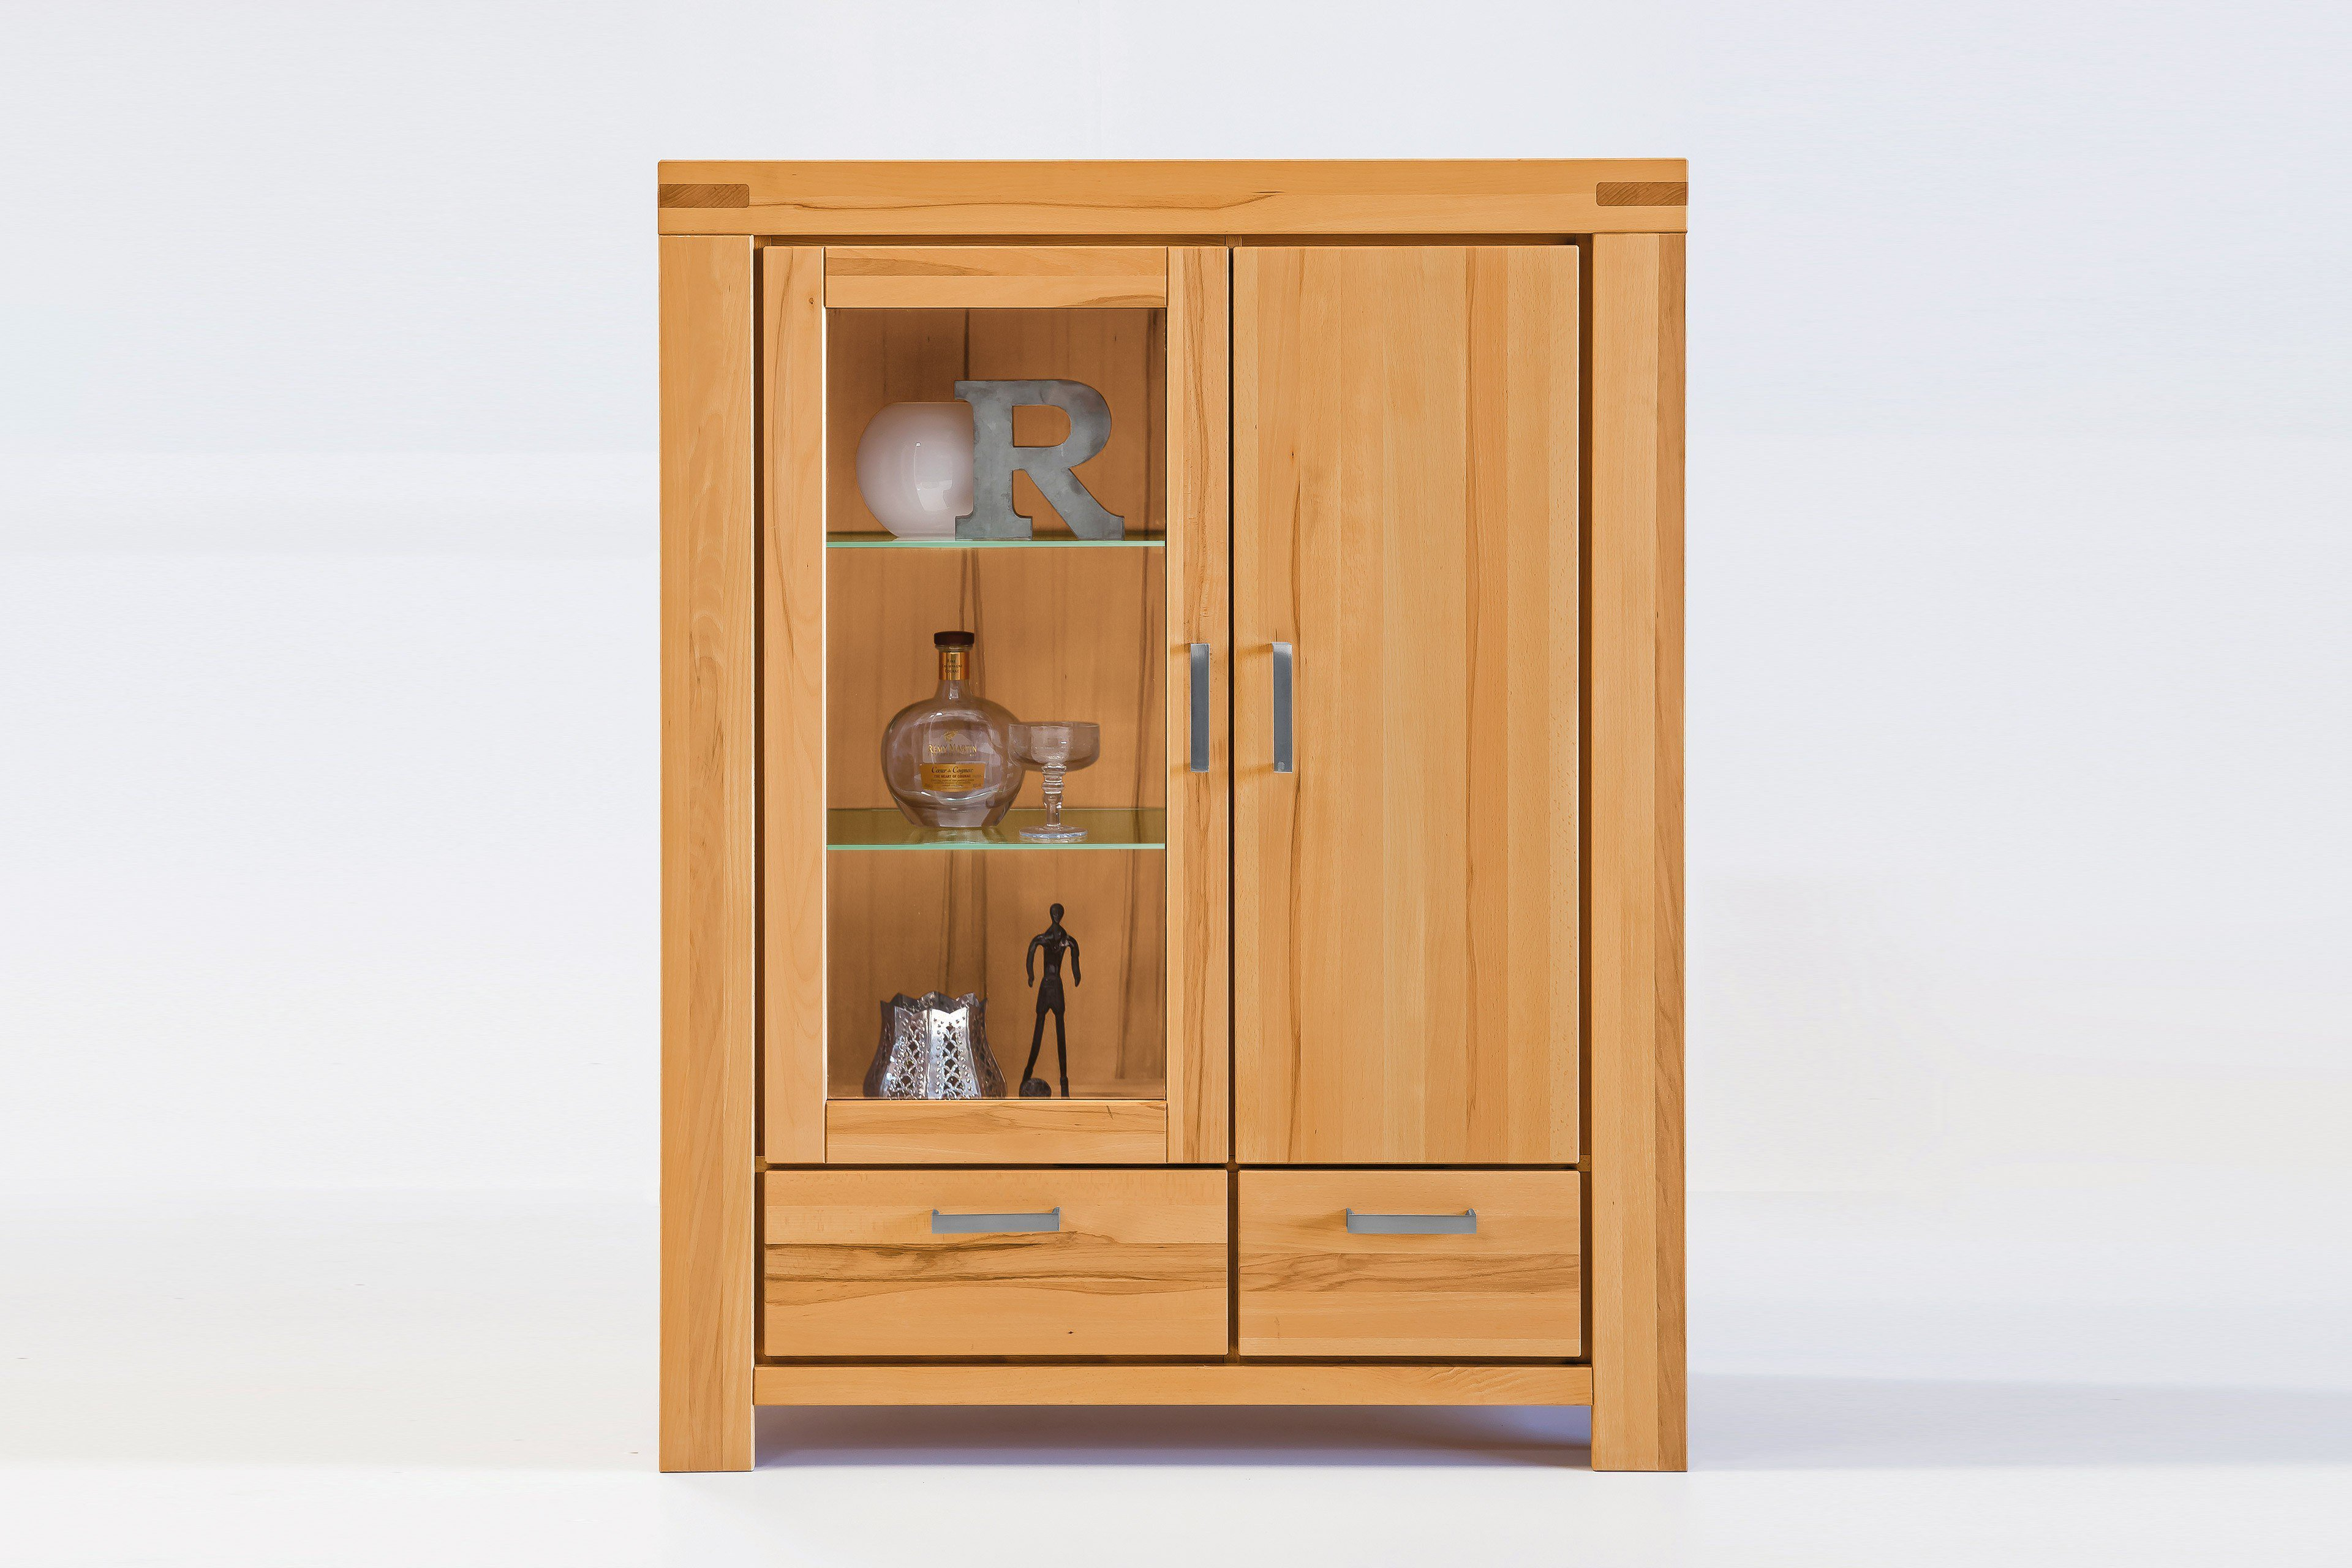 Kernbuche Möbel Elfo Möbel Highboard Kira Massive Kernbuche Möbel Letz